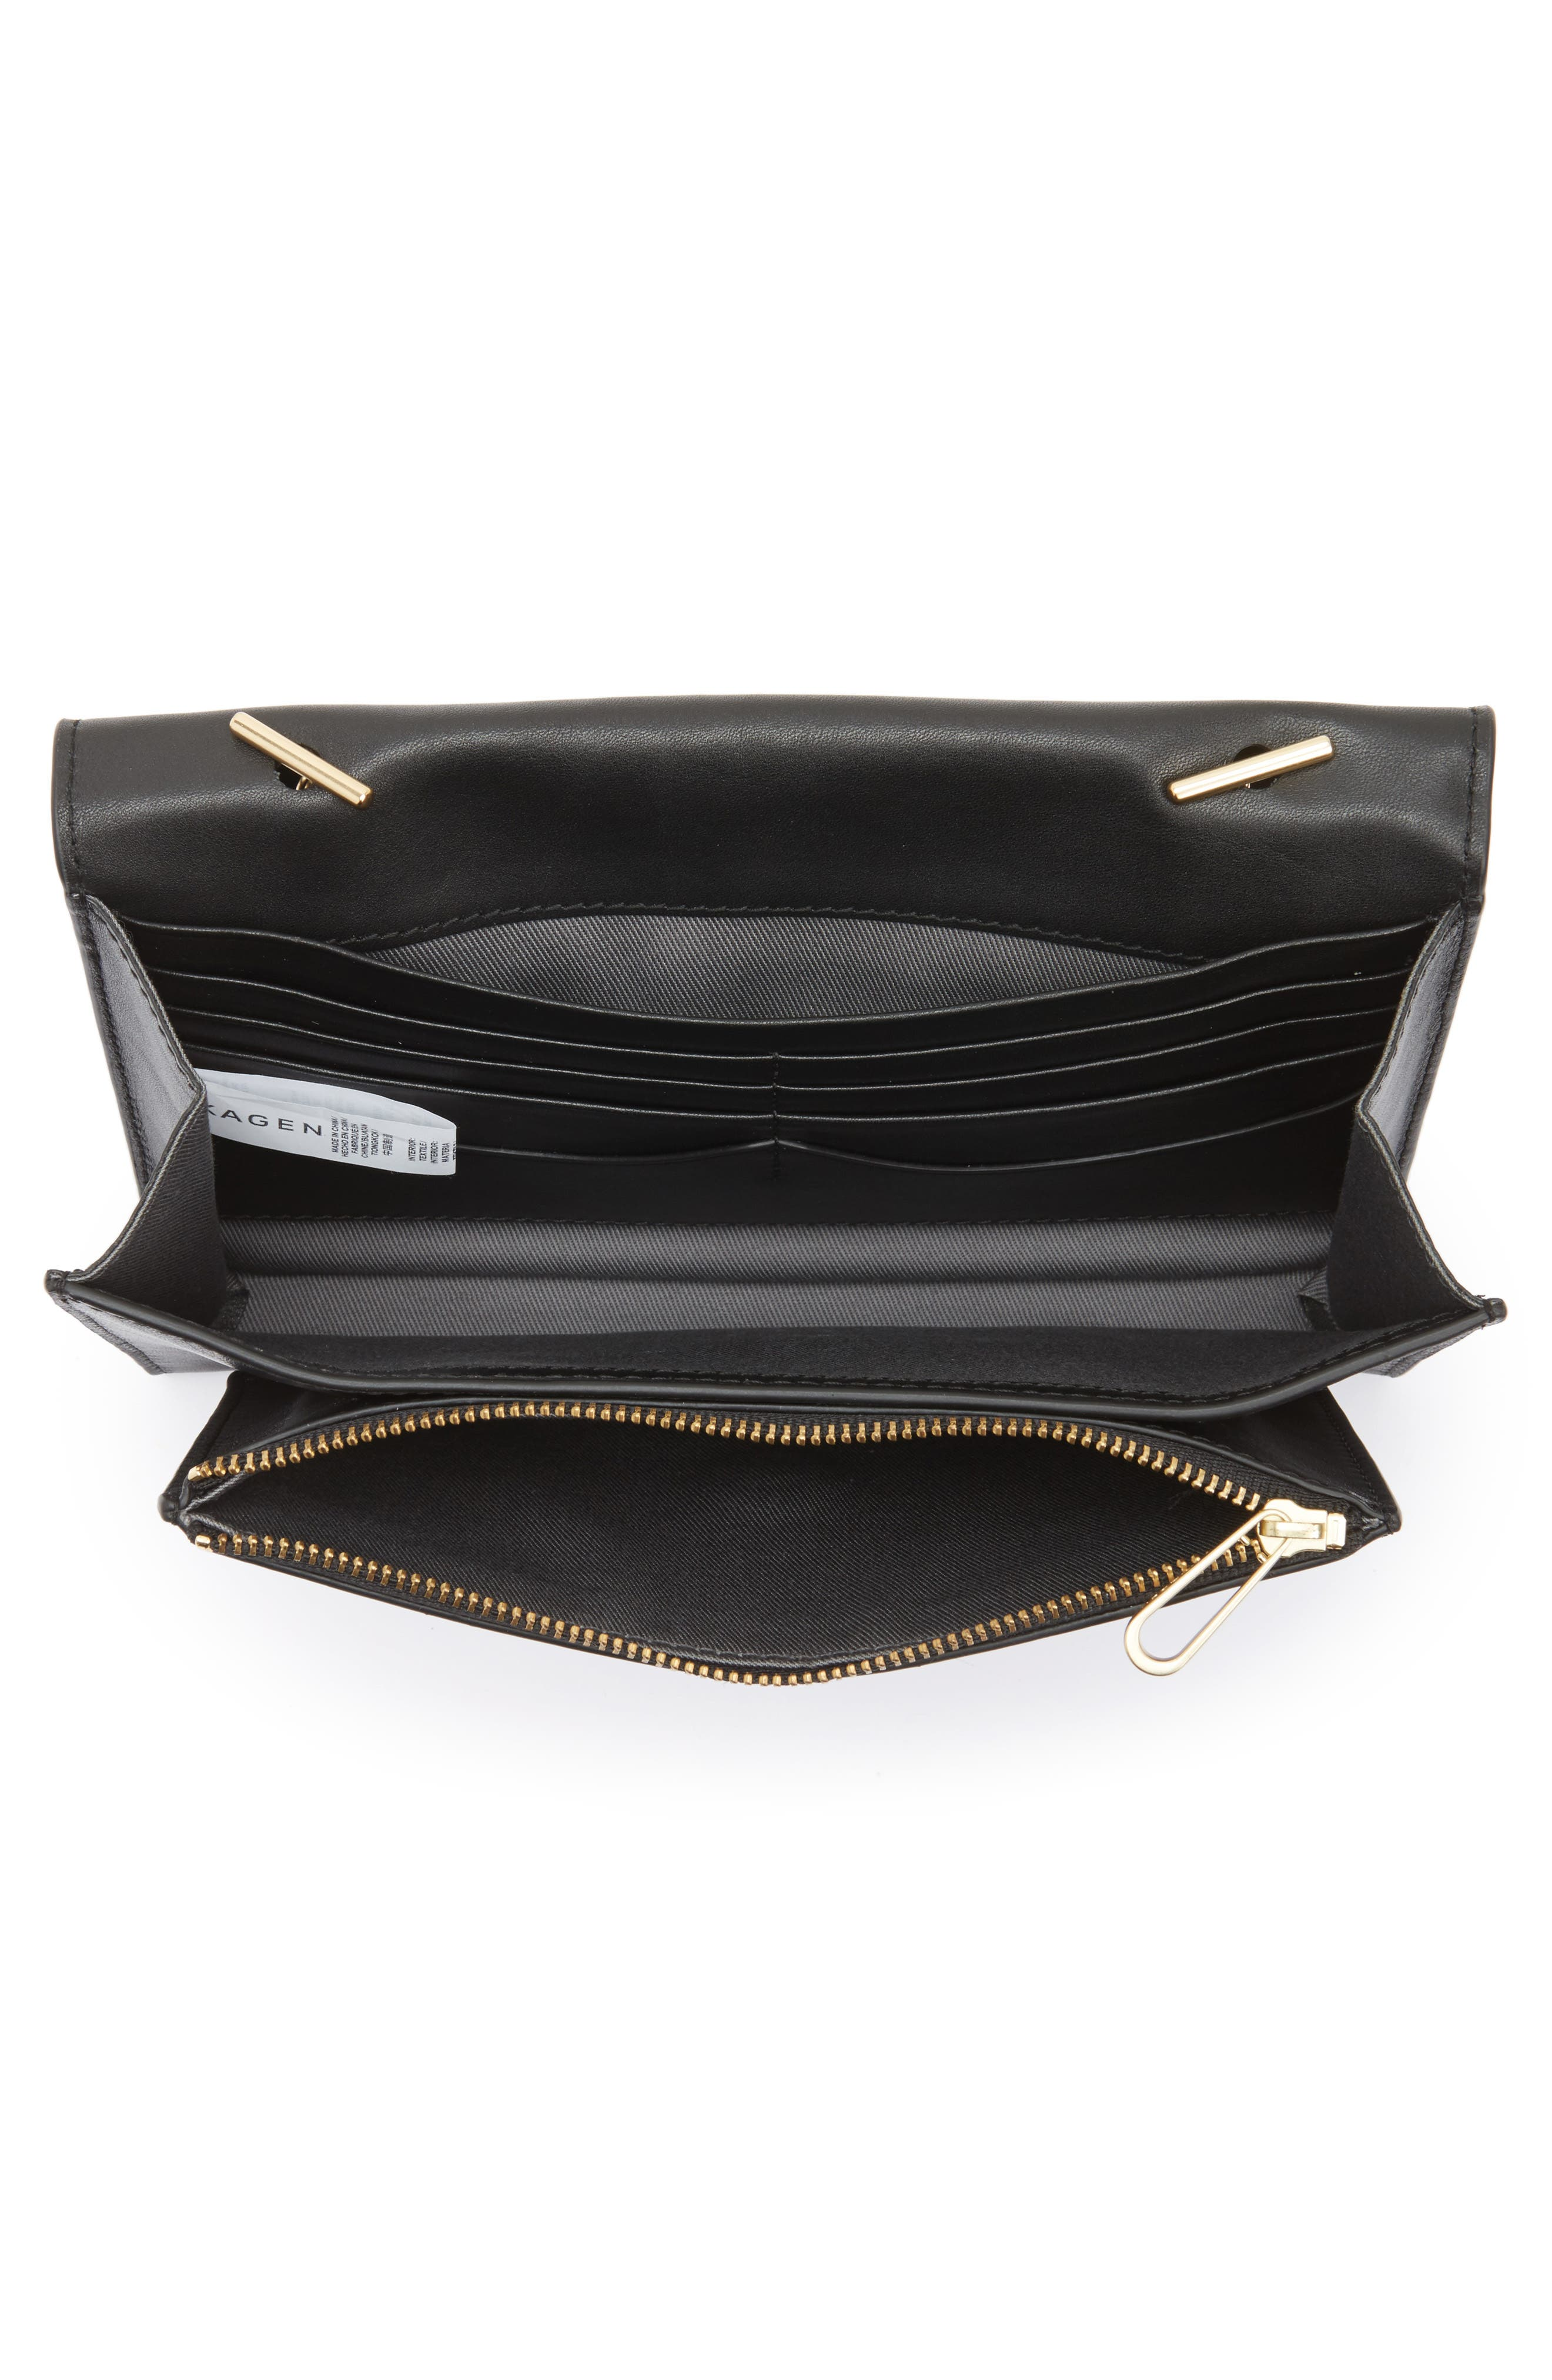 Eryka Leather Envelope Clutch with Detachable Chain,                             Alternate thumbnail 4, color,